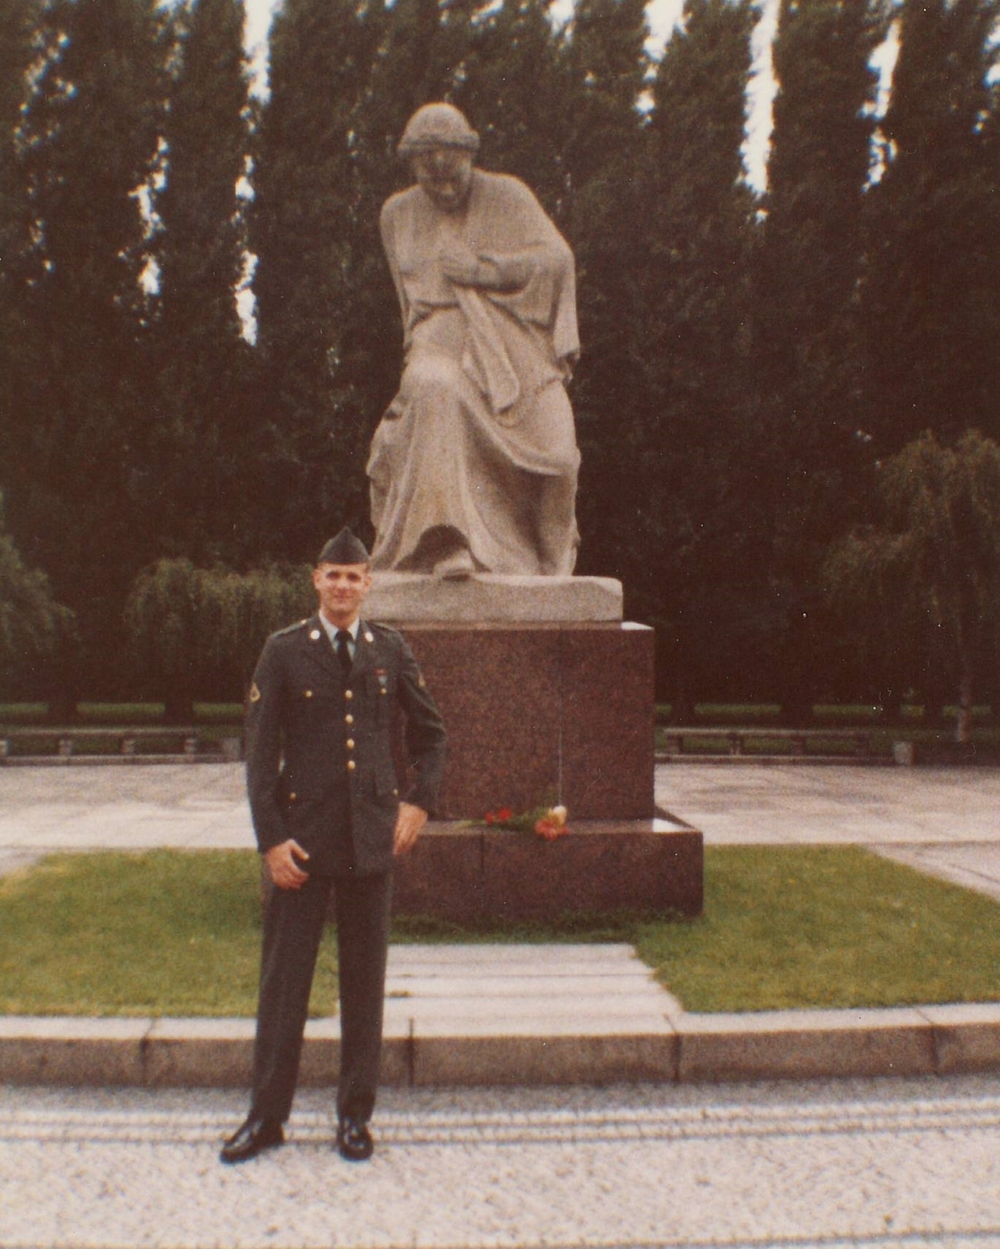 PFC Jonathan Dyer at the Soviet War Memorial - 1983